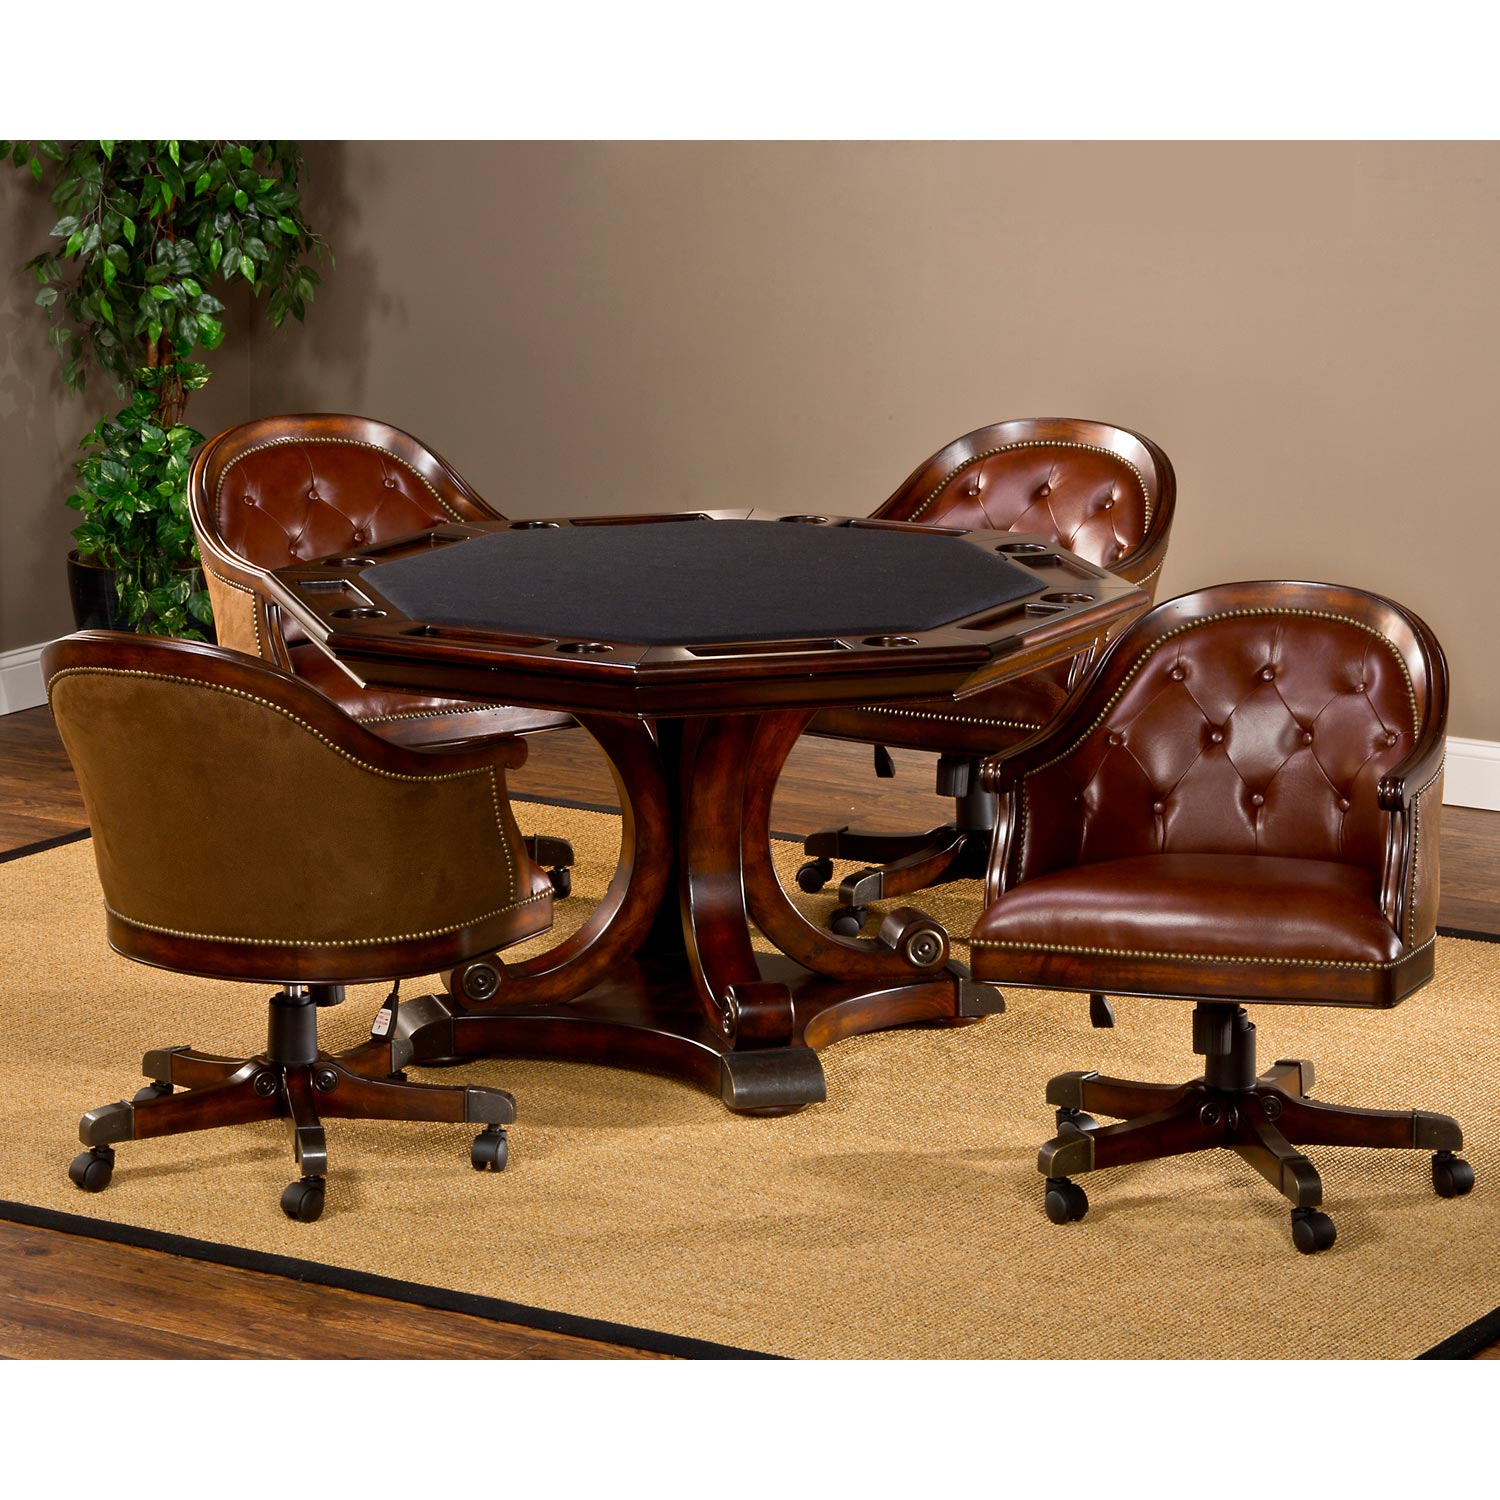 Leather Table Chairs: Brown Leather Chairs, Rich Cherry